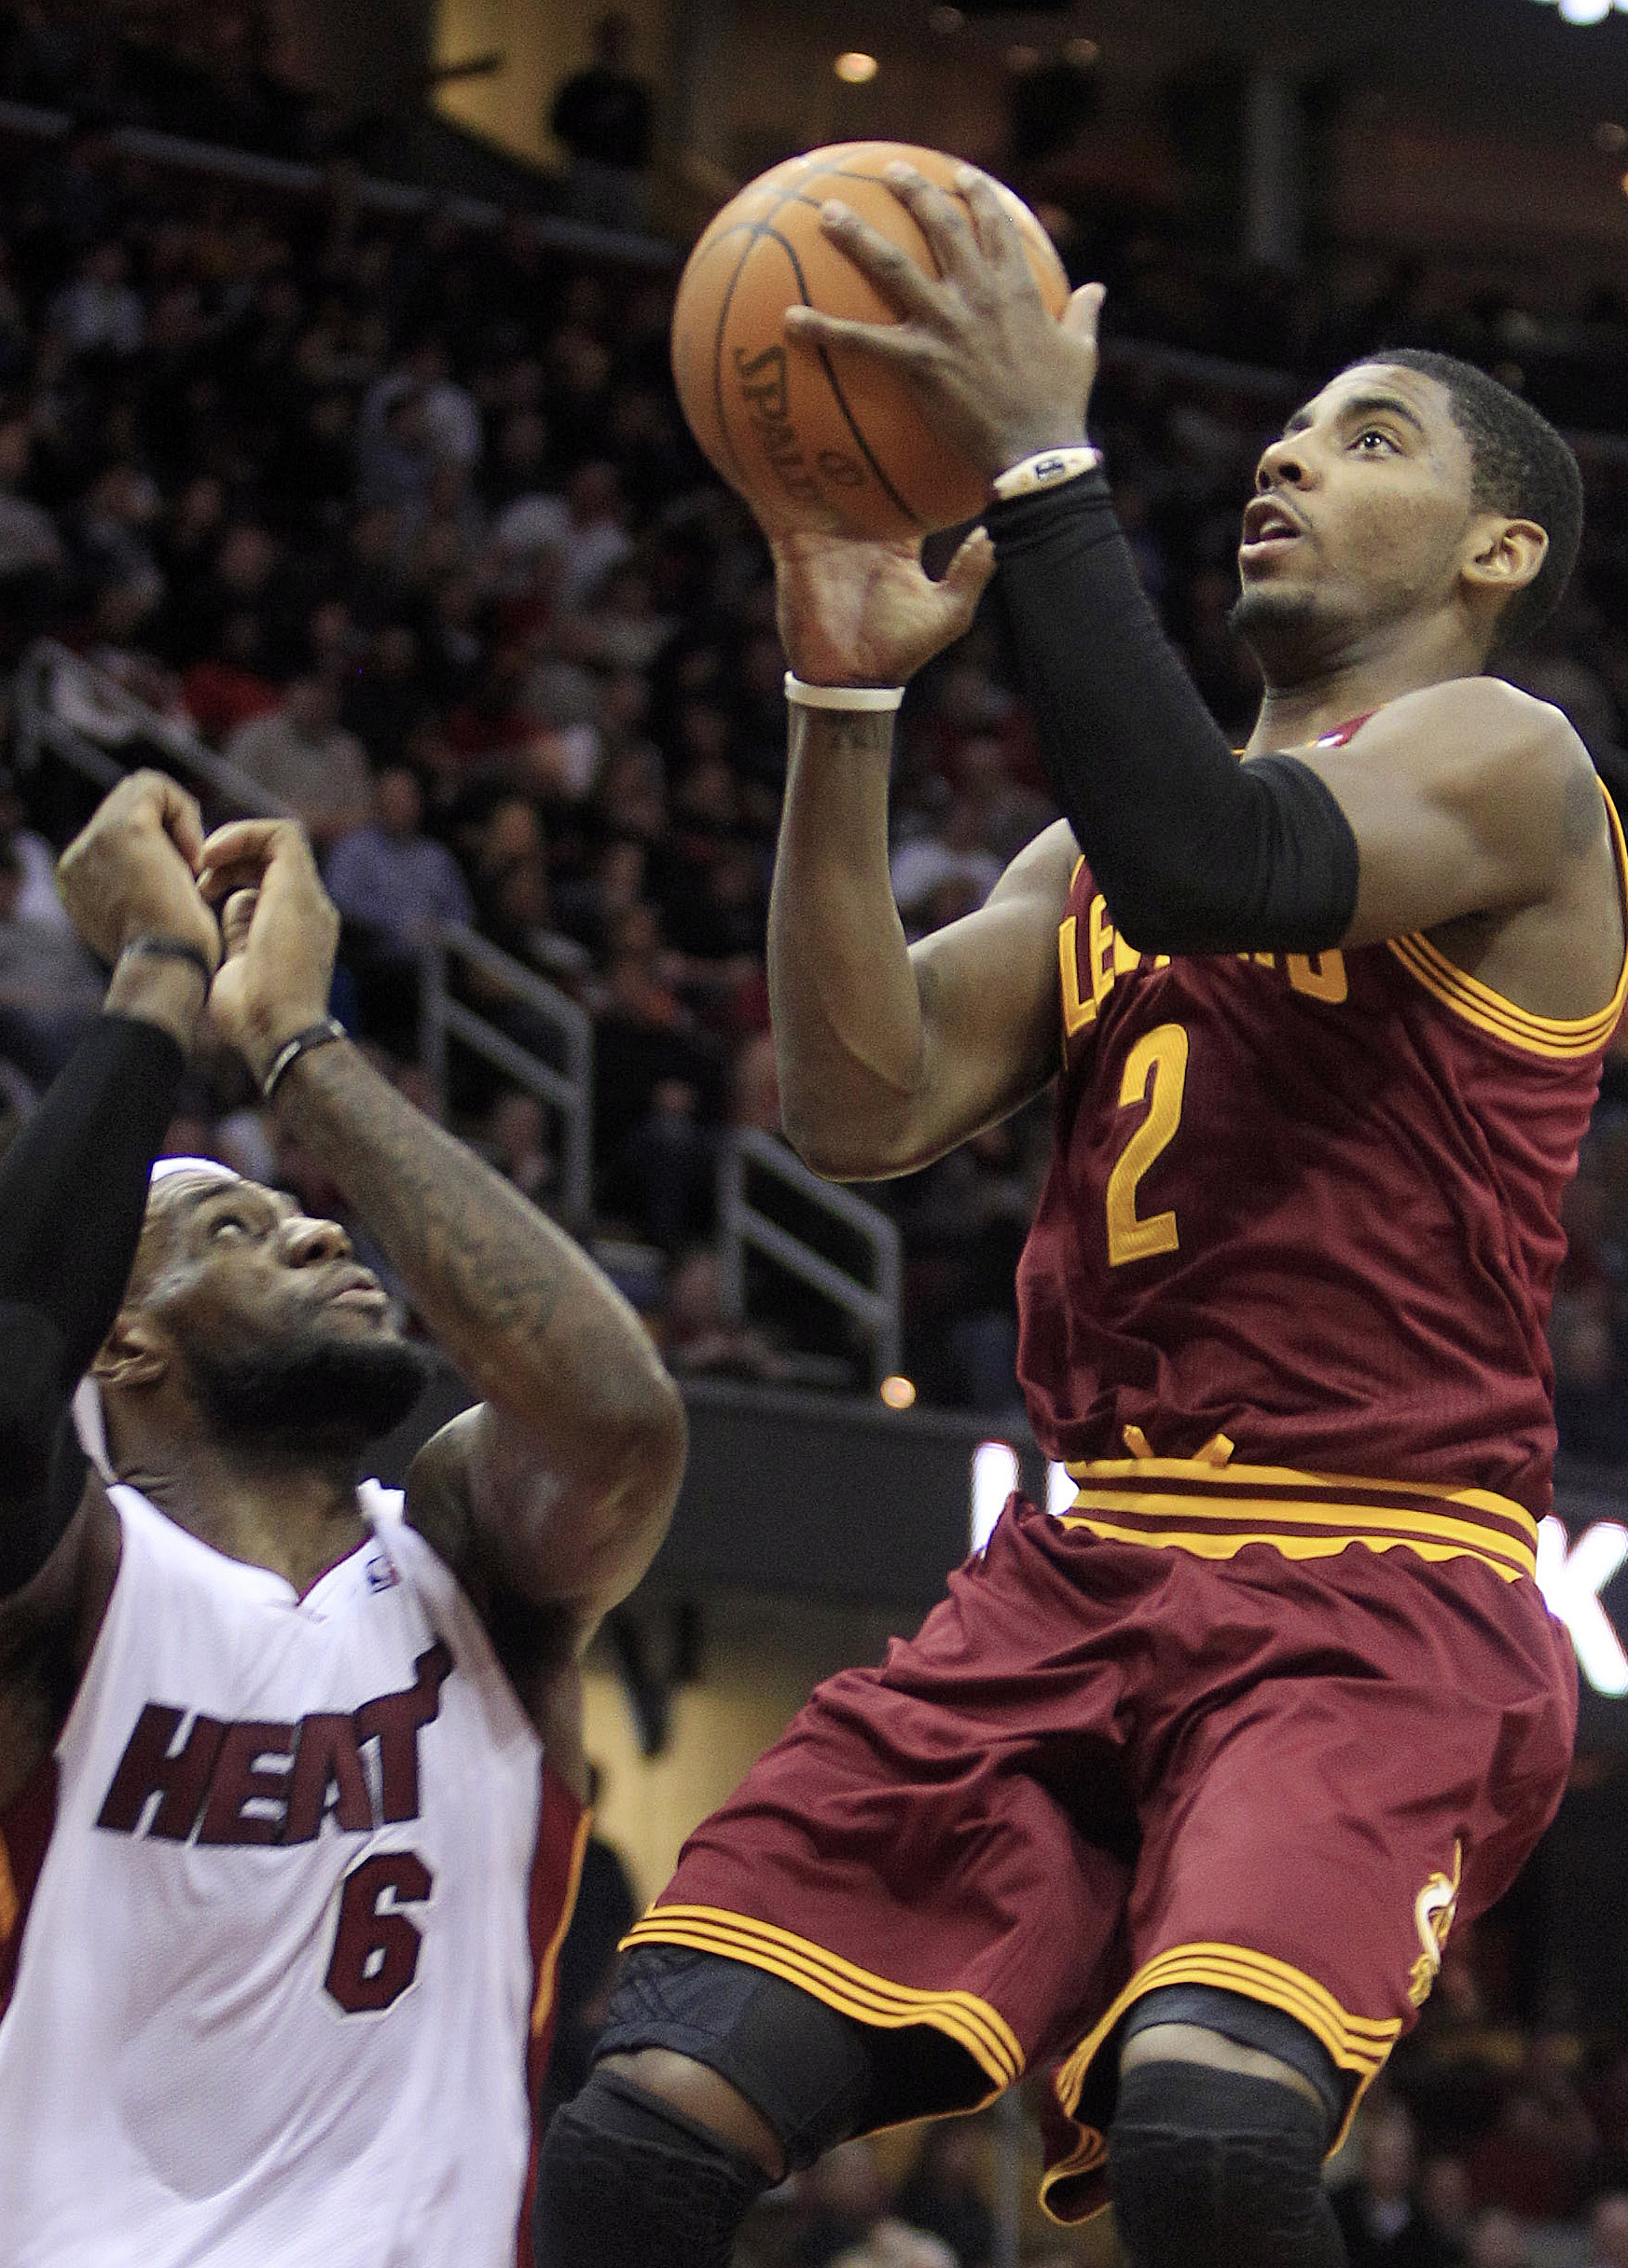 Cavs News >> LeBron scores 28 to help Heat thump Cavaliers - The Blade